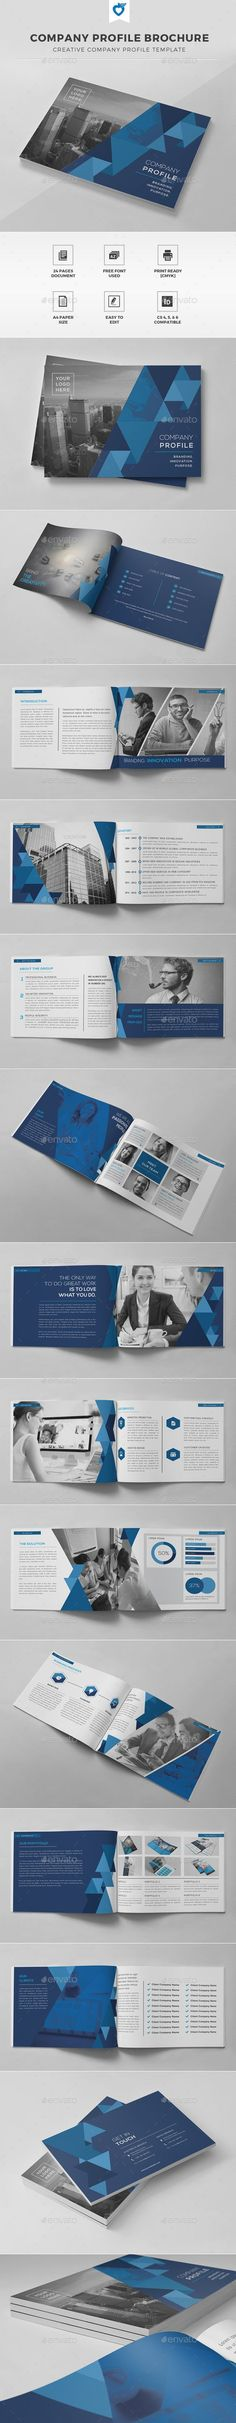 Company Profile Brochure Template #design Download: http://graphicriver.net/item/company-profile-brochure/11808076?ref=ksioks: